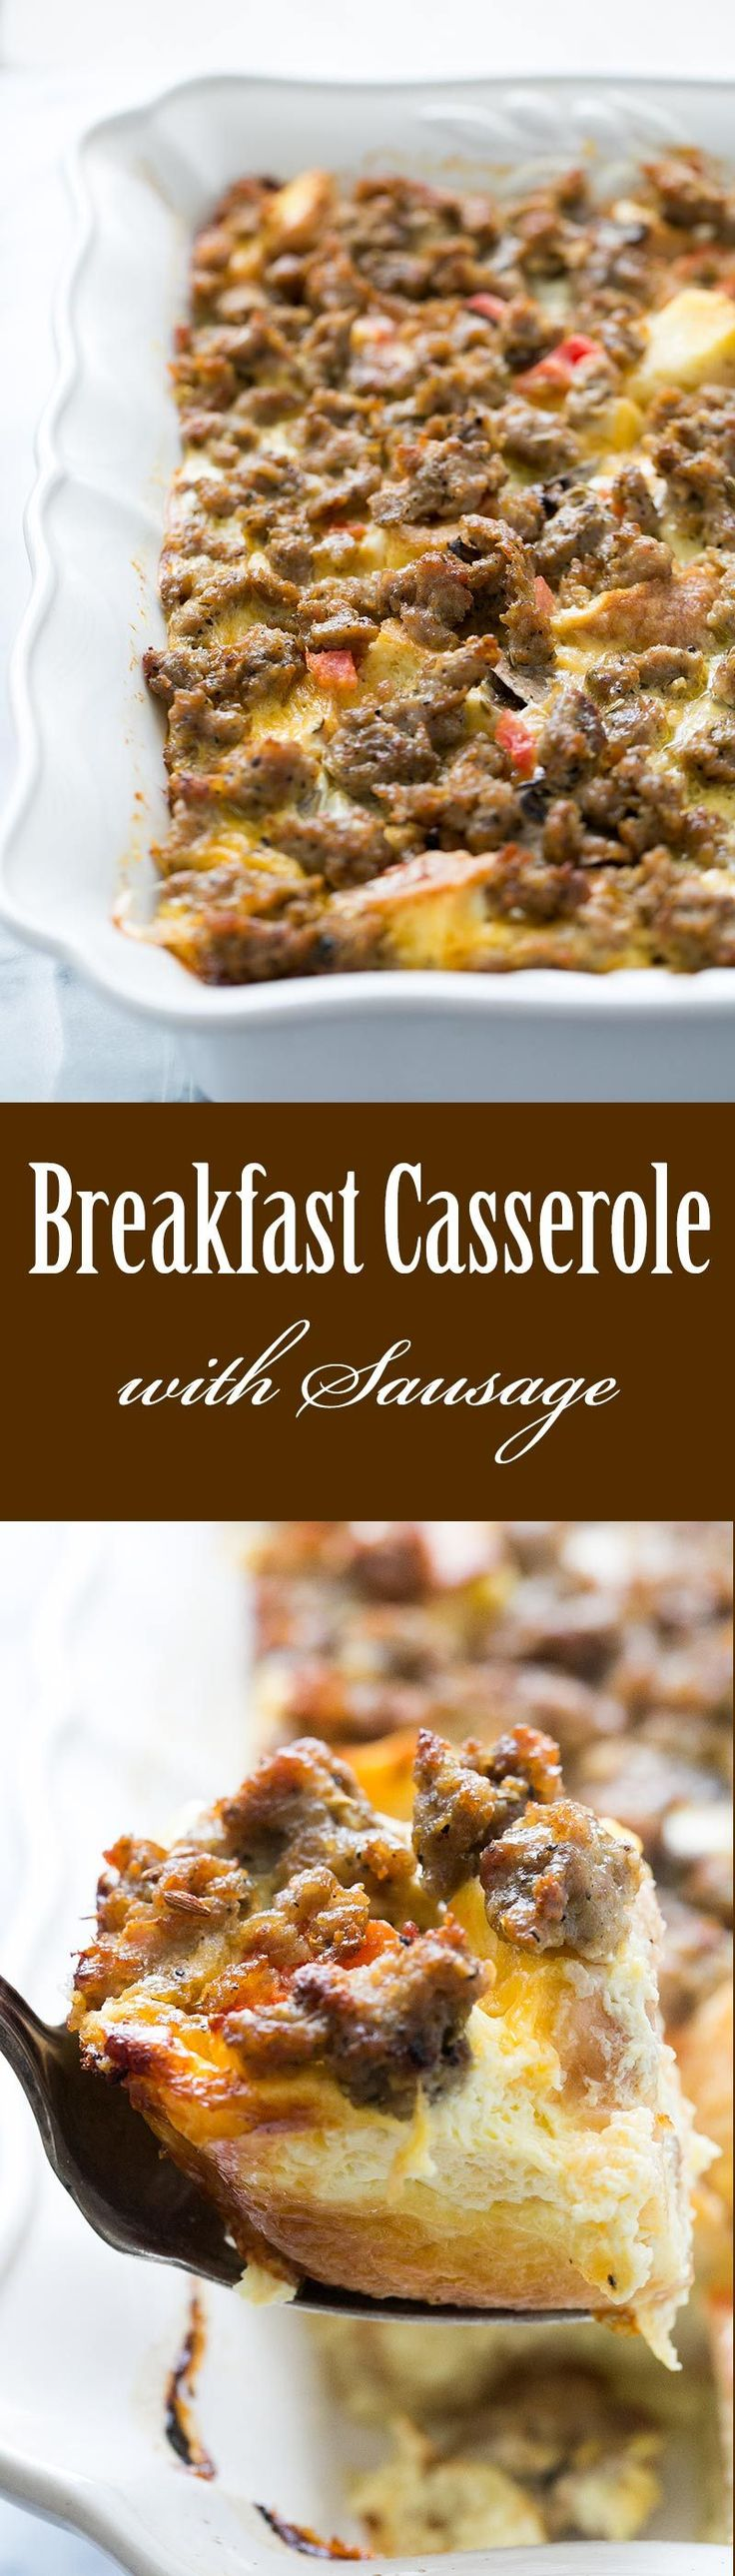 Sausage Breakfast Casserole ~ EASY sausage breakfast casserole! With eggs, sharp cheddar cheese, cubed day old bread, and Italian pork sausage. Perfect brunch casserole! ~ SimplyRecipes.com